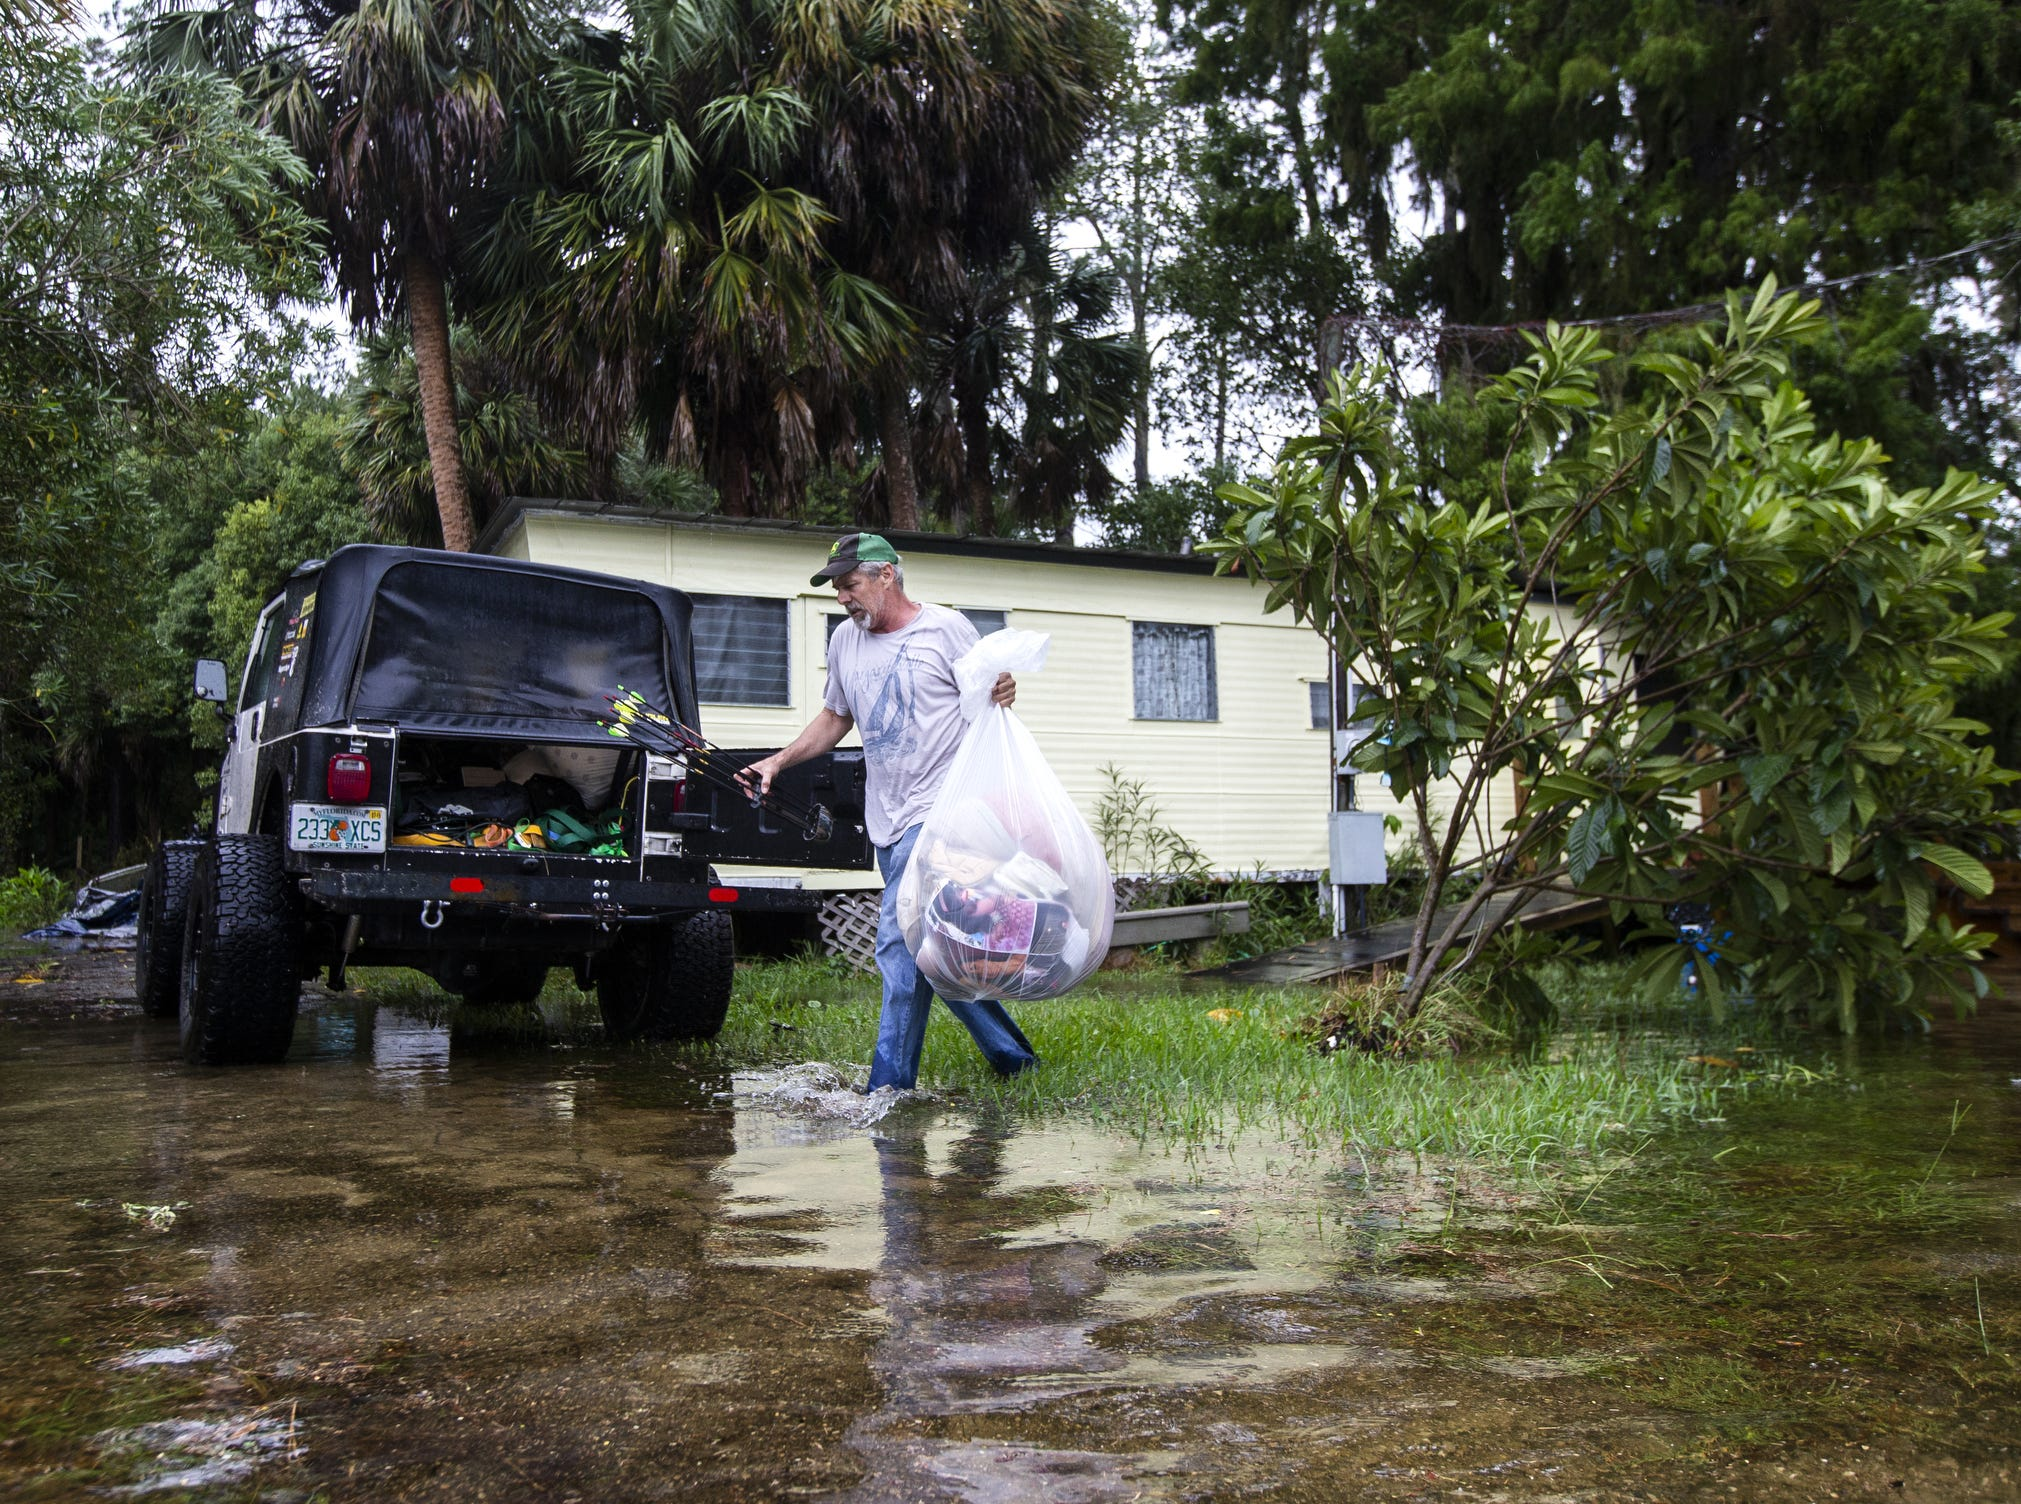 Mitchell Pope tries to salvage what he can from his mobile home as Hurricane Michael pushes the storm surge up the Wakulla and Saint Marks Rivers which come together here, Wednesday, in Saint Marks, Fla.